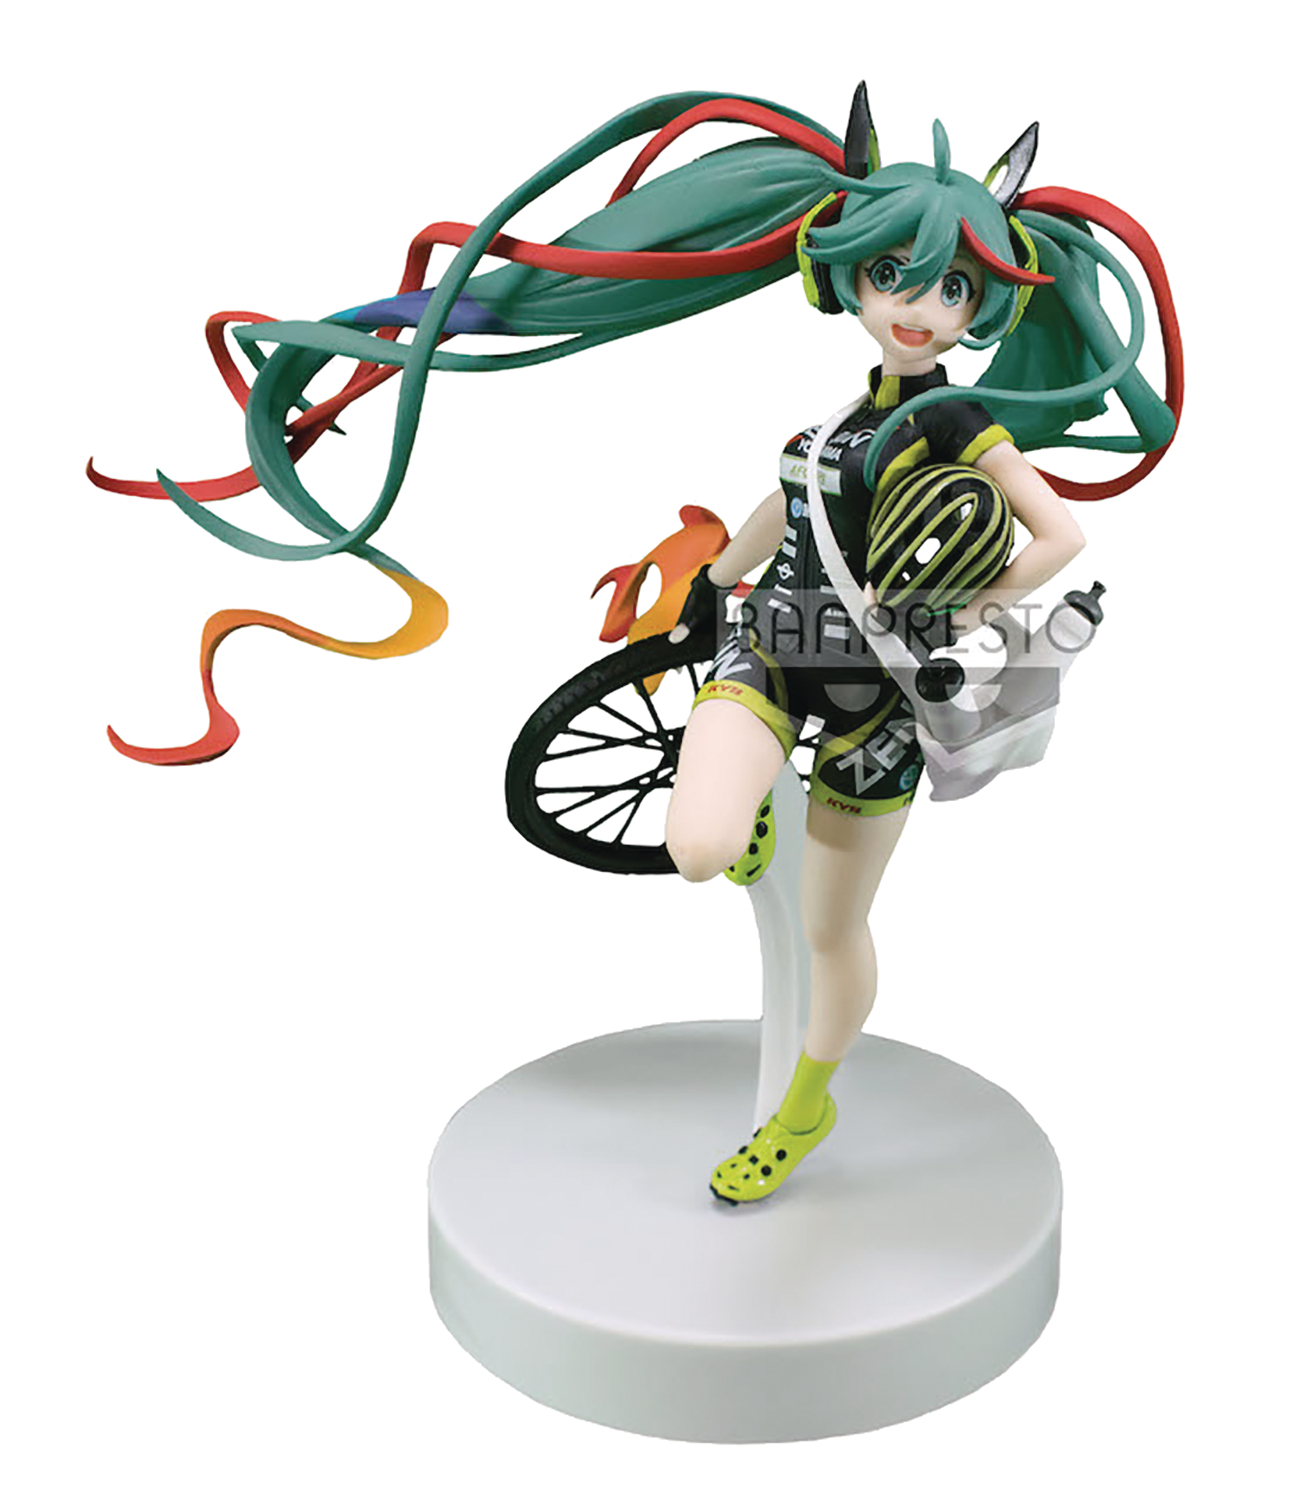 HATSUNE MIKU RACING RACING MIKU 2016 TEAM UKYO CHEERING FIG